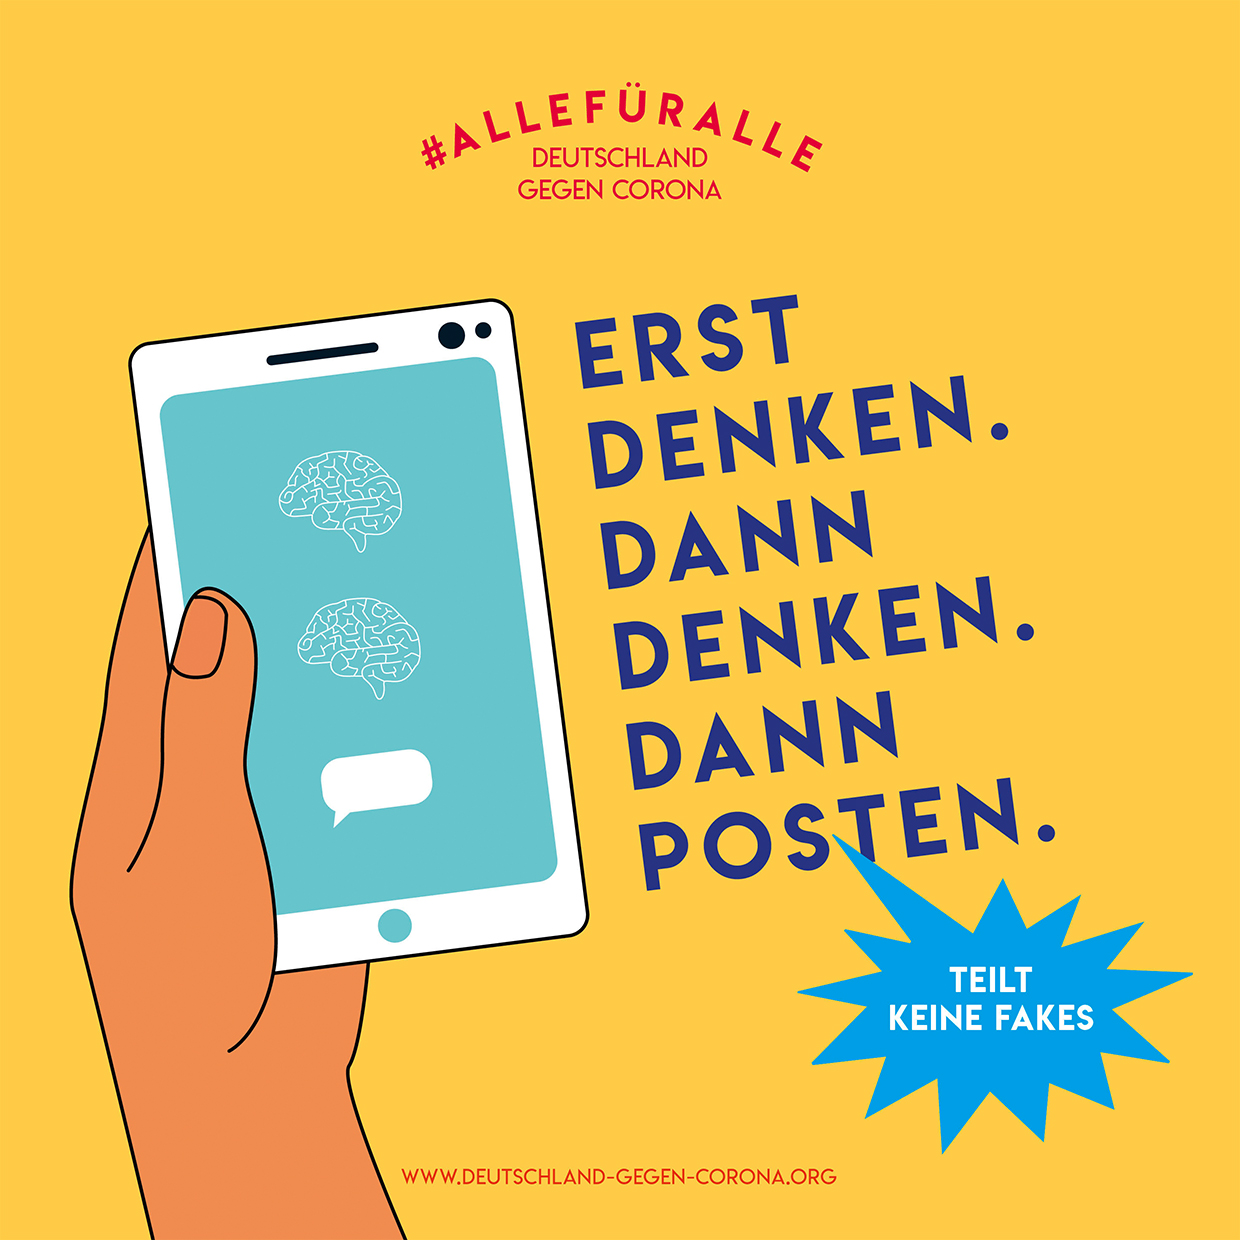 allefueralle website motiv 12